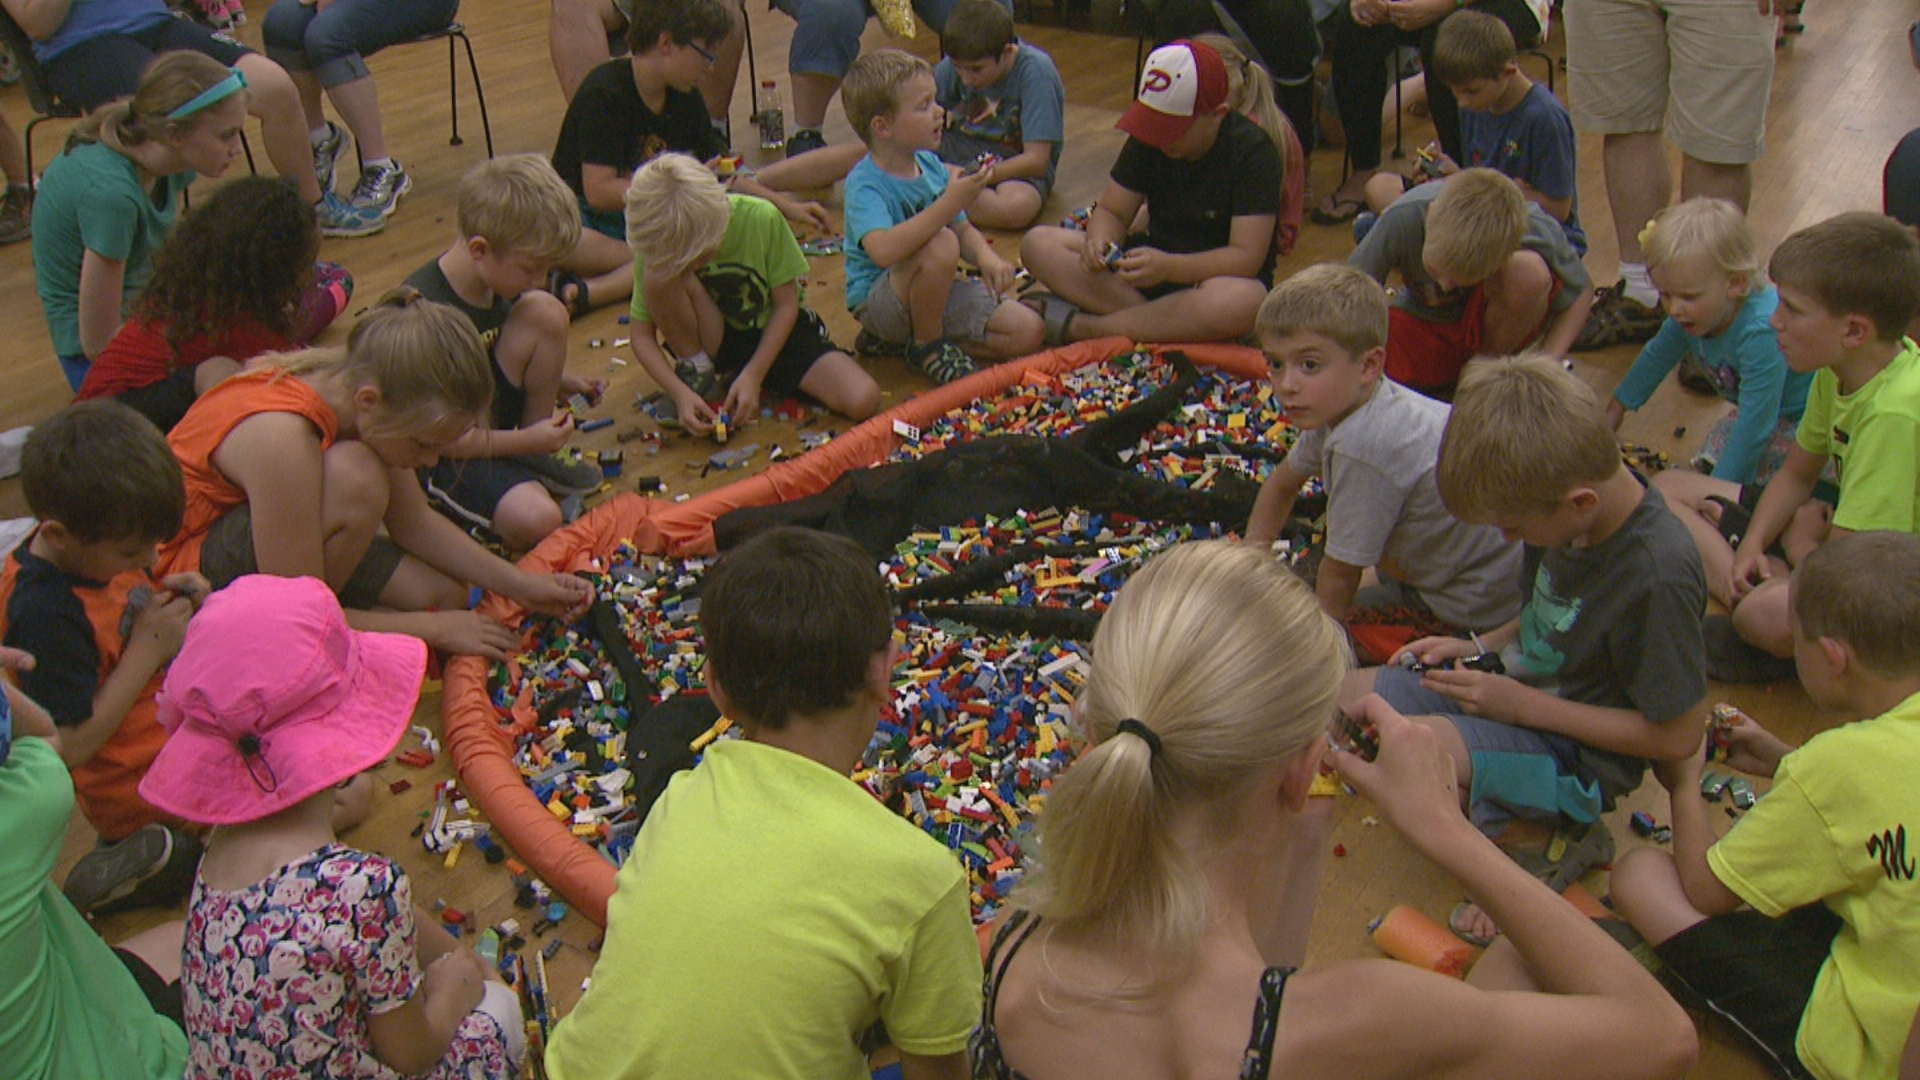 The Lego build event was held at Bay Beach Amusement Park Saturday, Aug. 12, 2017. (WLUK)